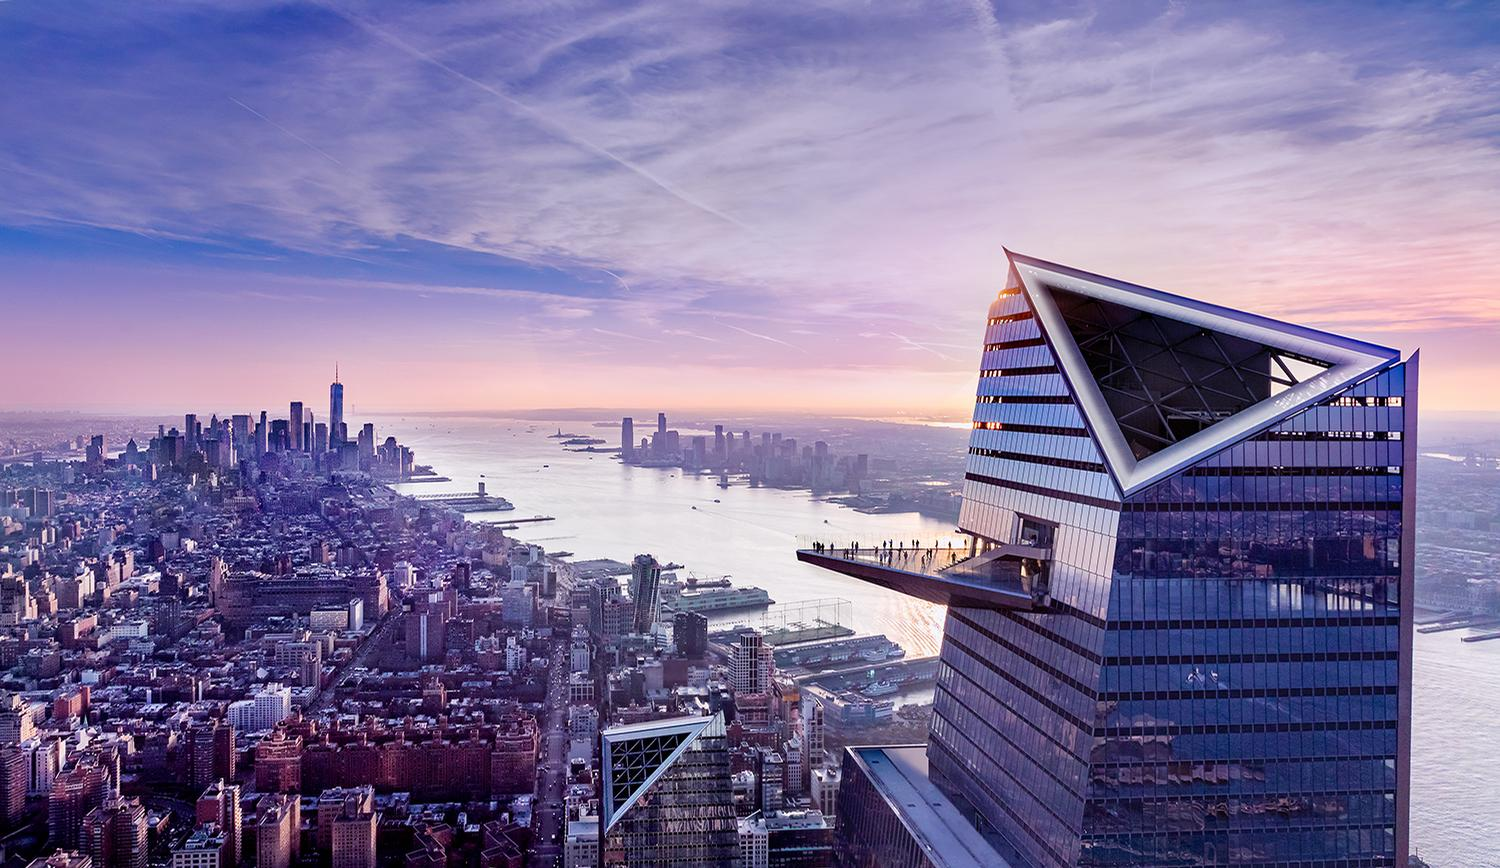 Edge extends 80ft (24m) out from the 100th floor of 30 Hudson Yards at a height of 1,131ft (345m) / Courtesy of Related-Oxford